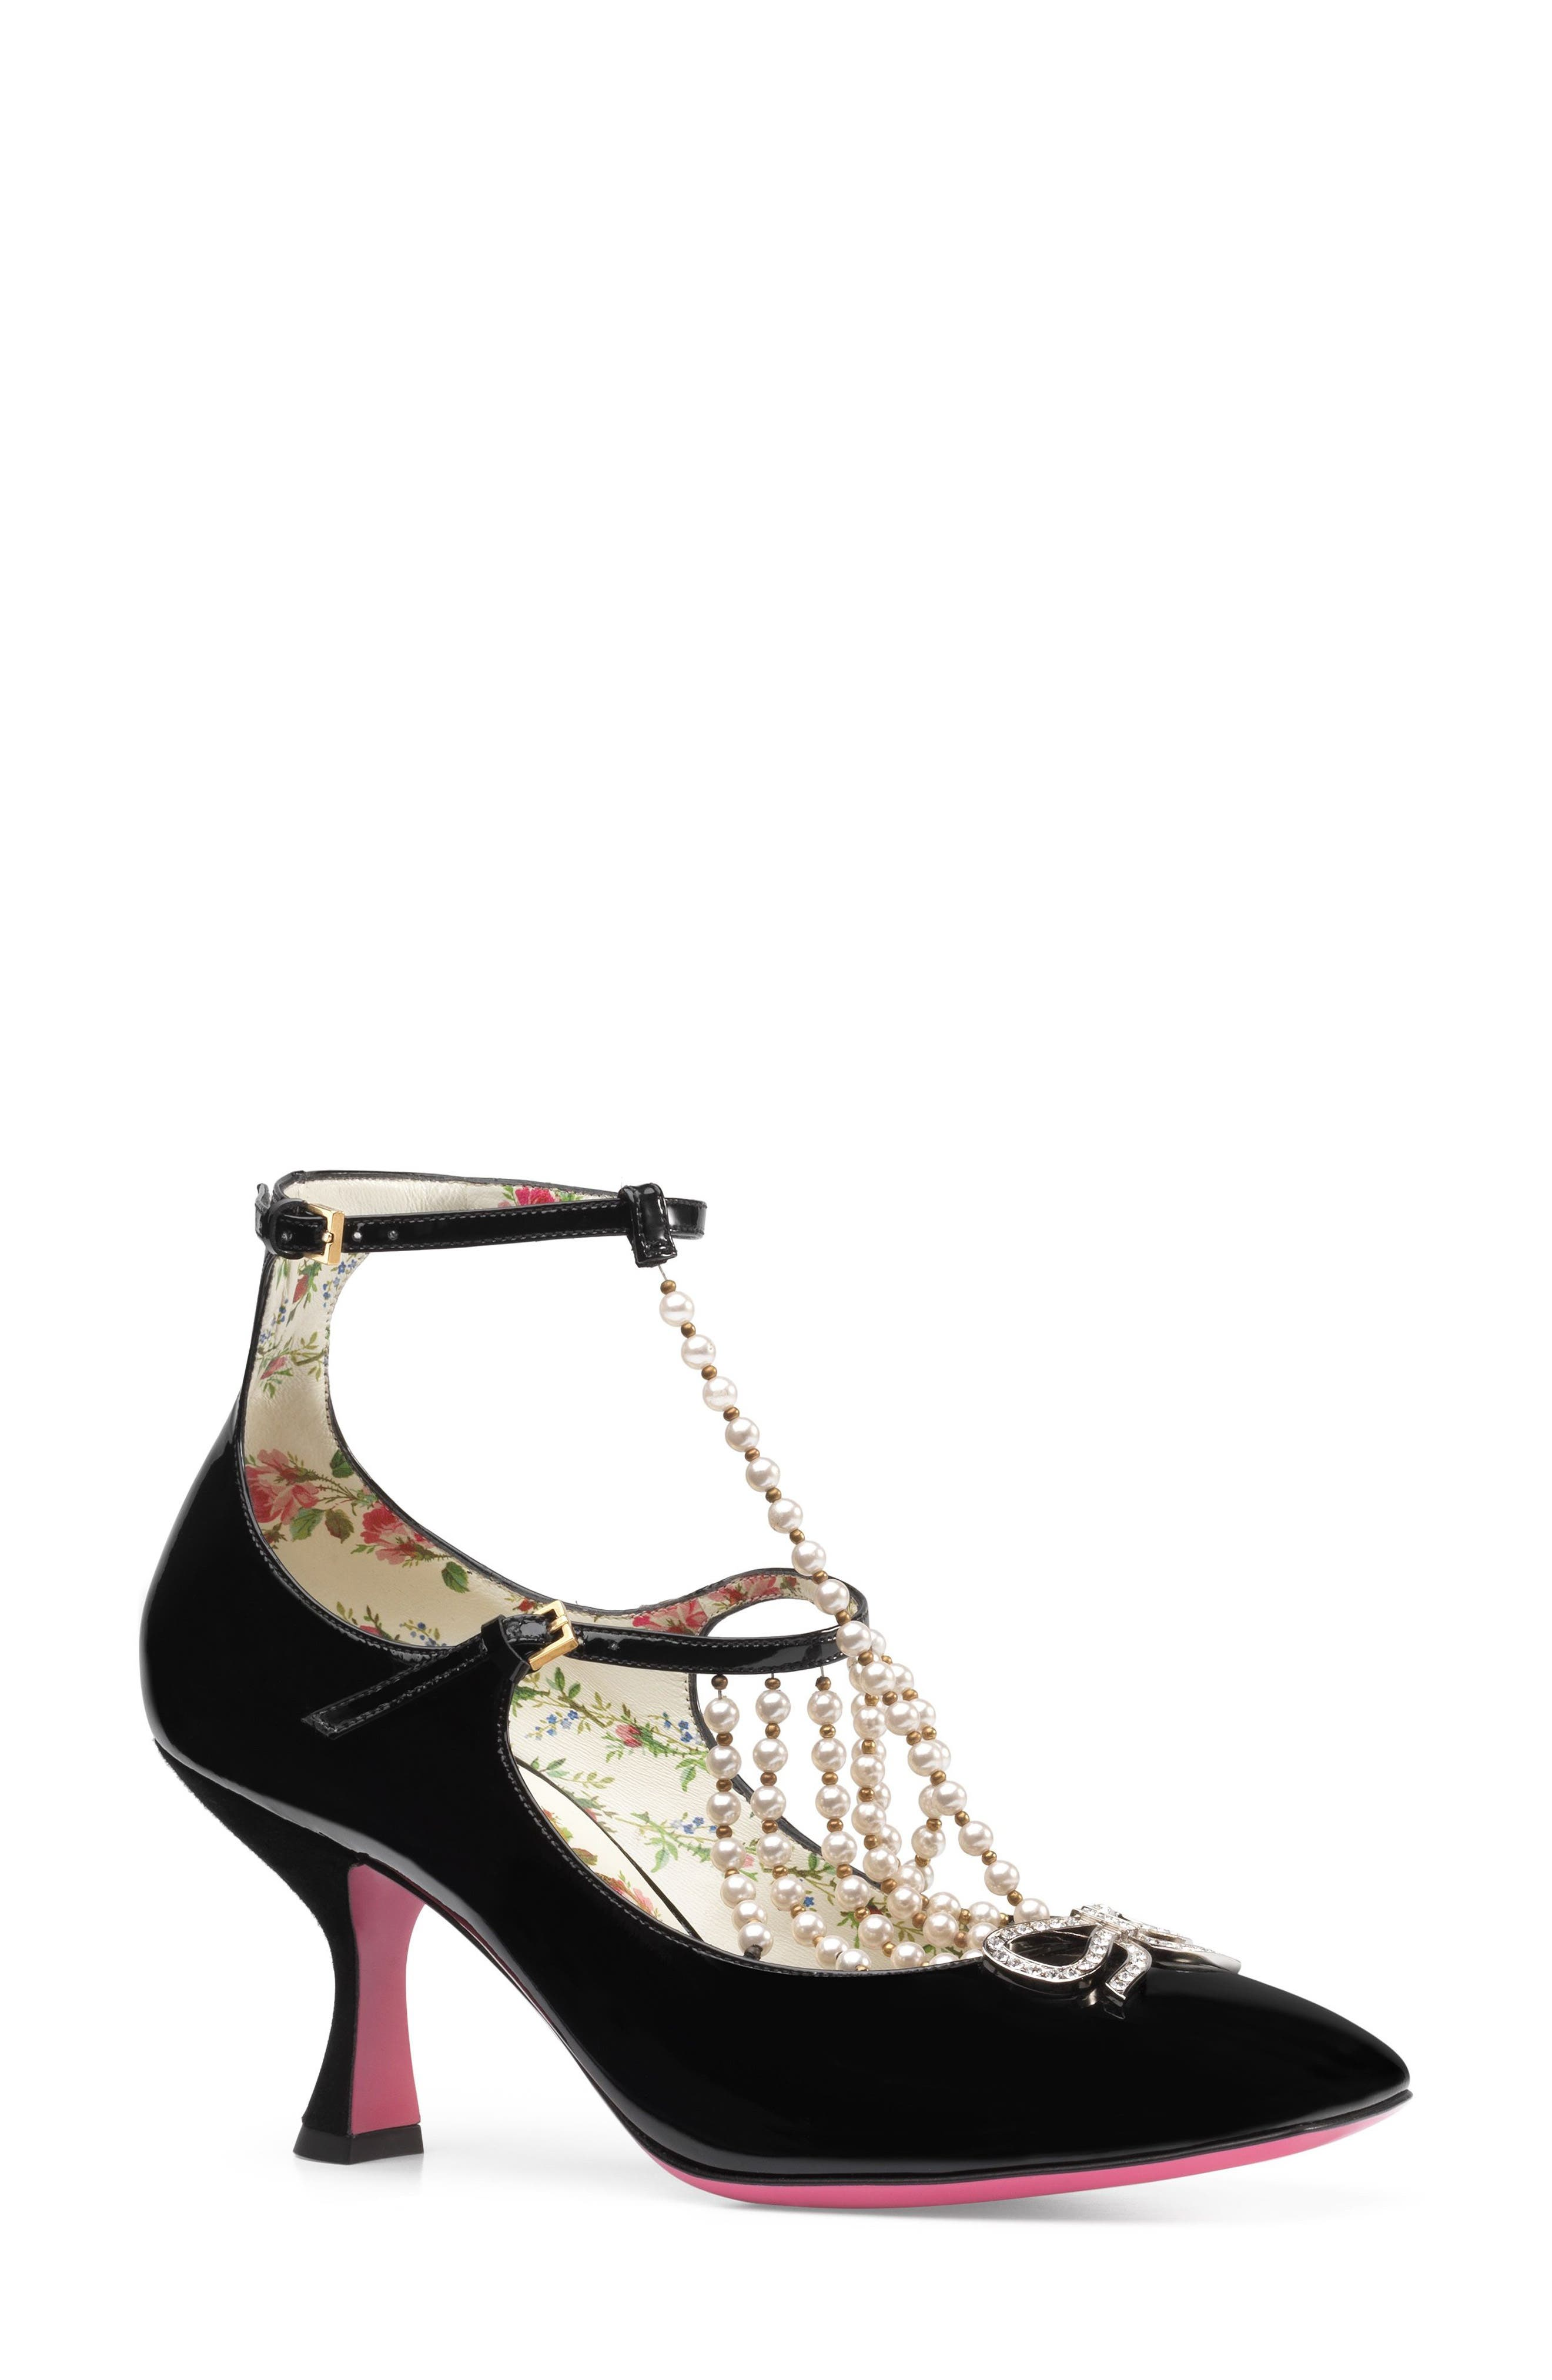 Alternate Image 1 Selected - Gucci Taide Embellished Pump (Women)